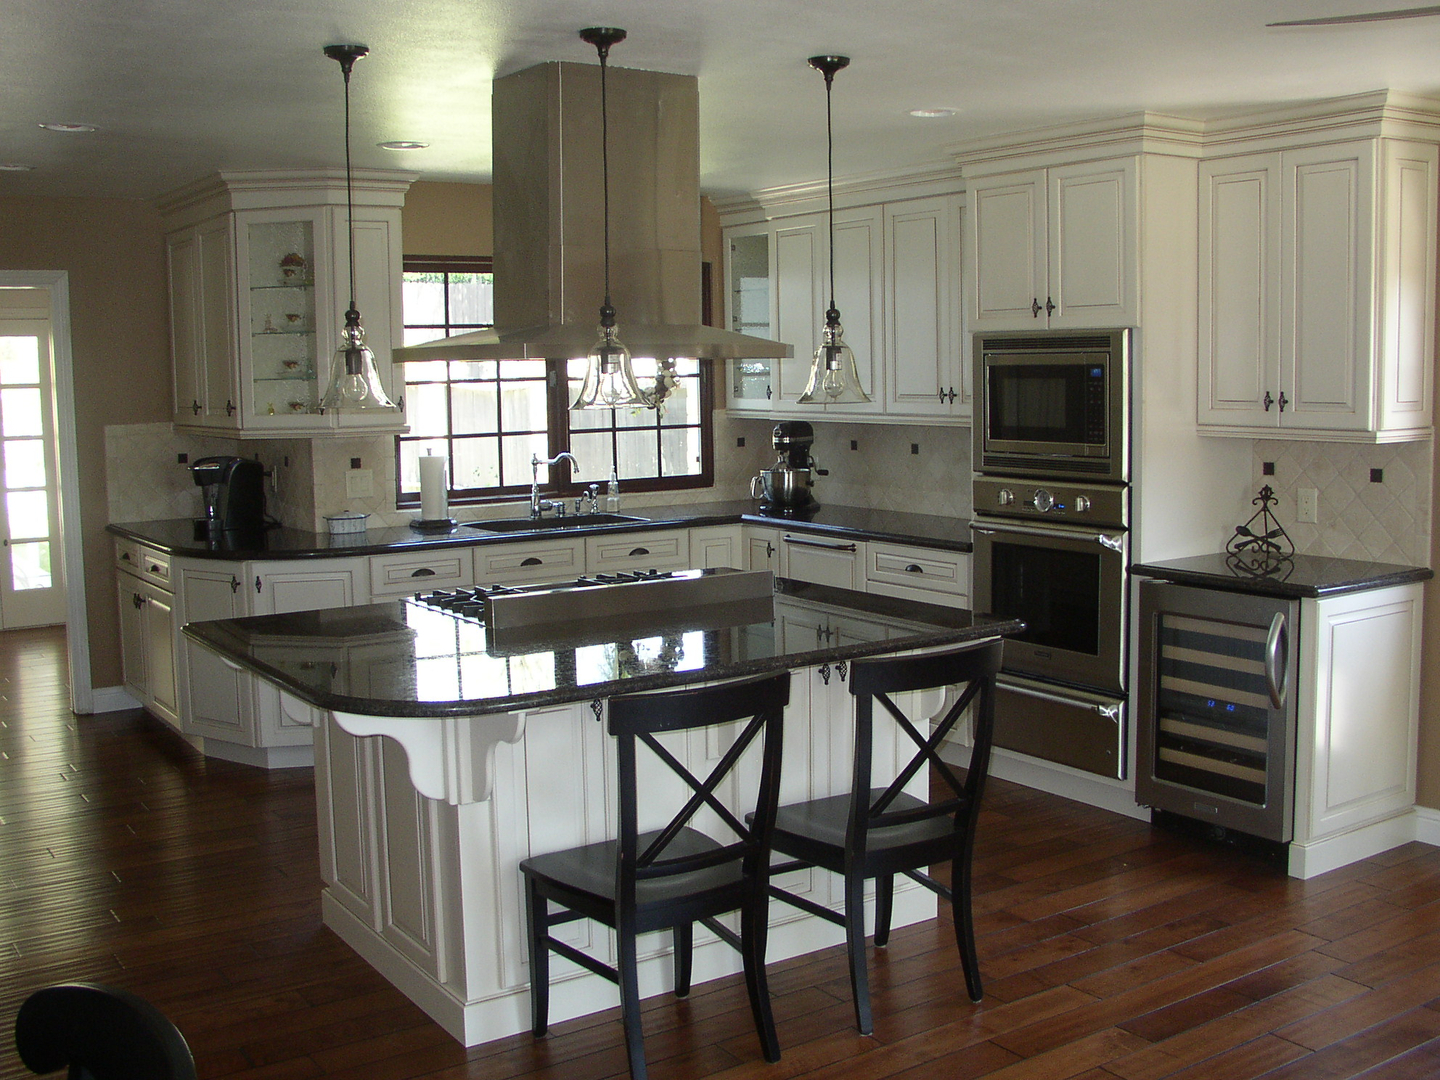 The Kitchen Post inc In Rancho Cucamonga Ca